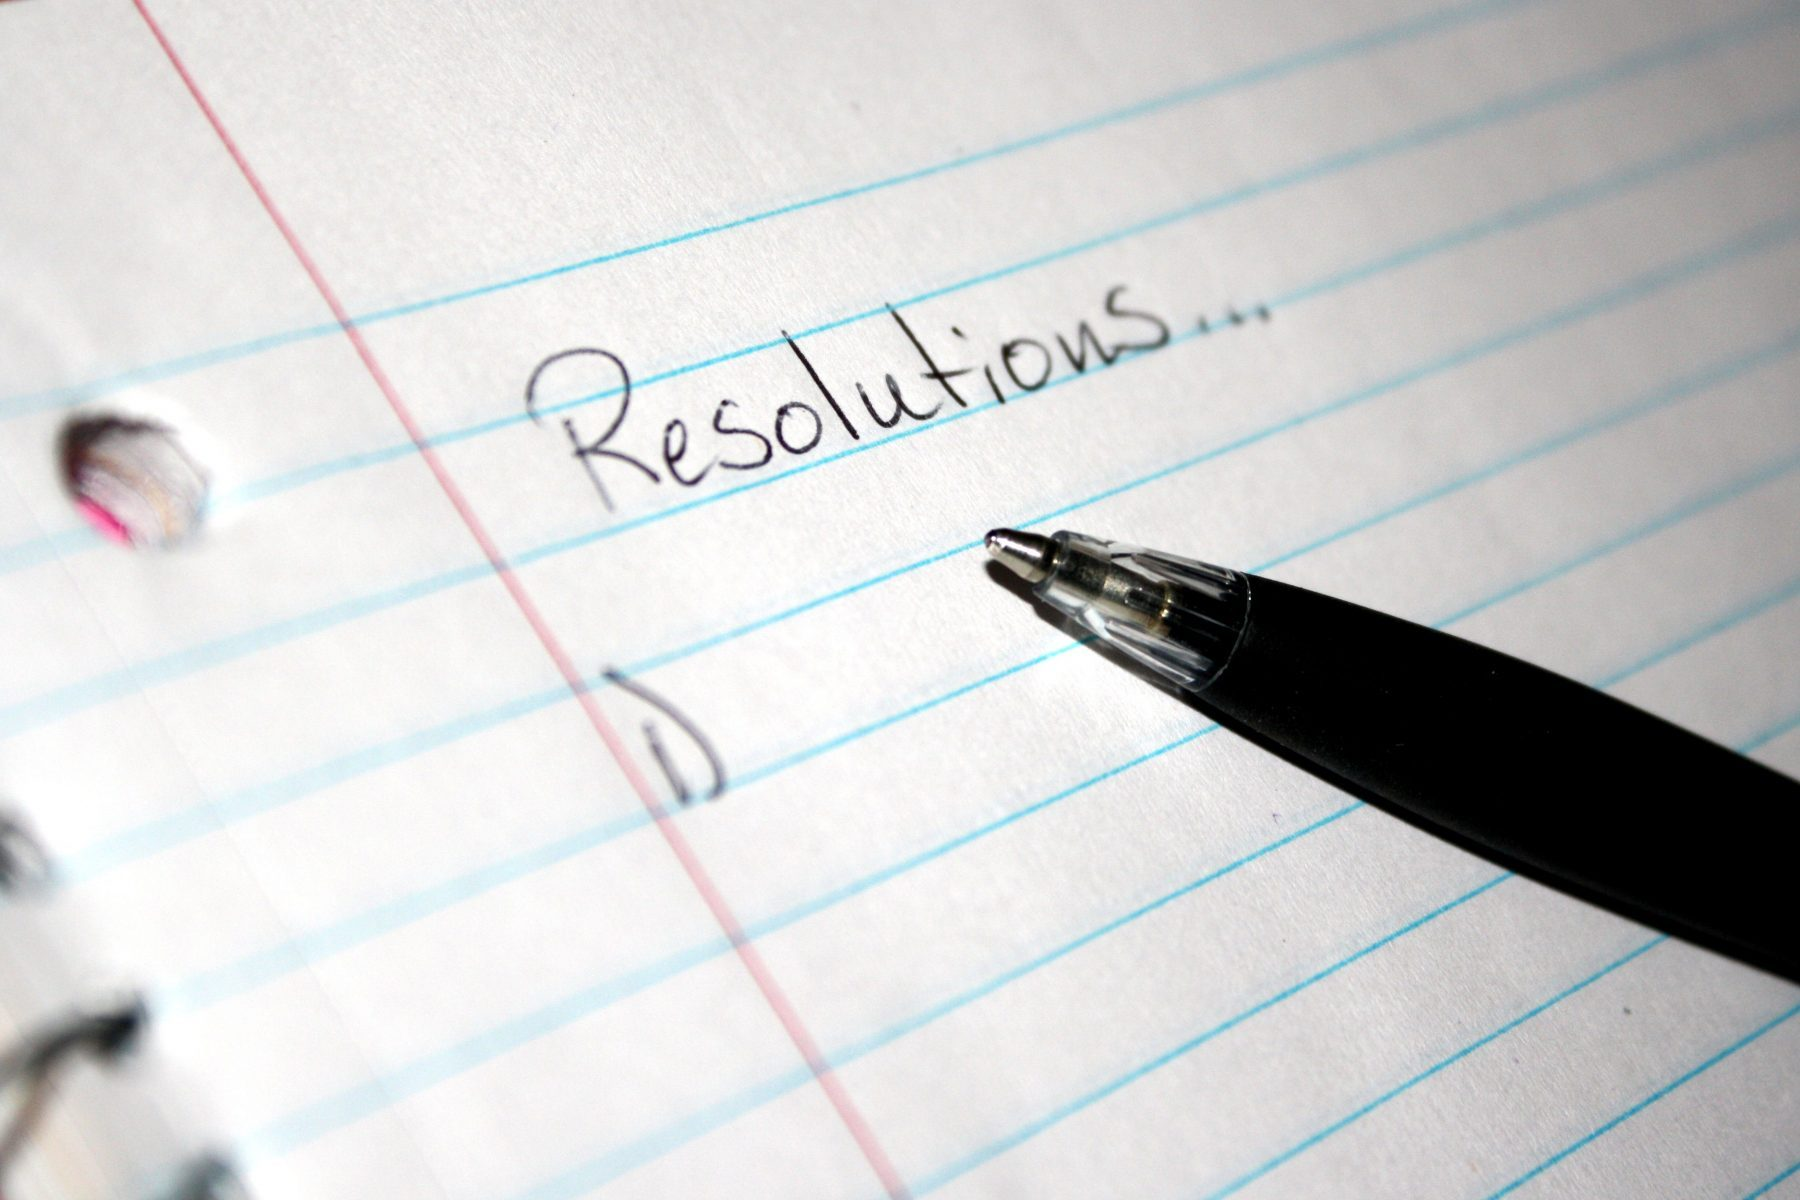 coders-new-years-resolutions-2019